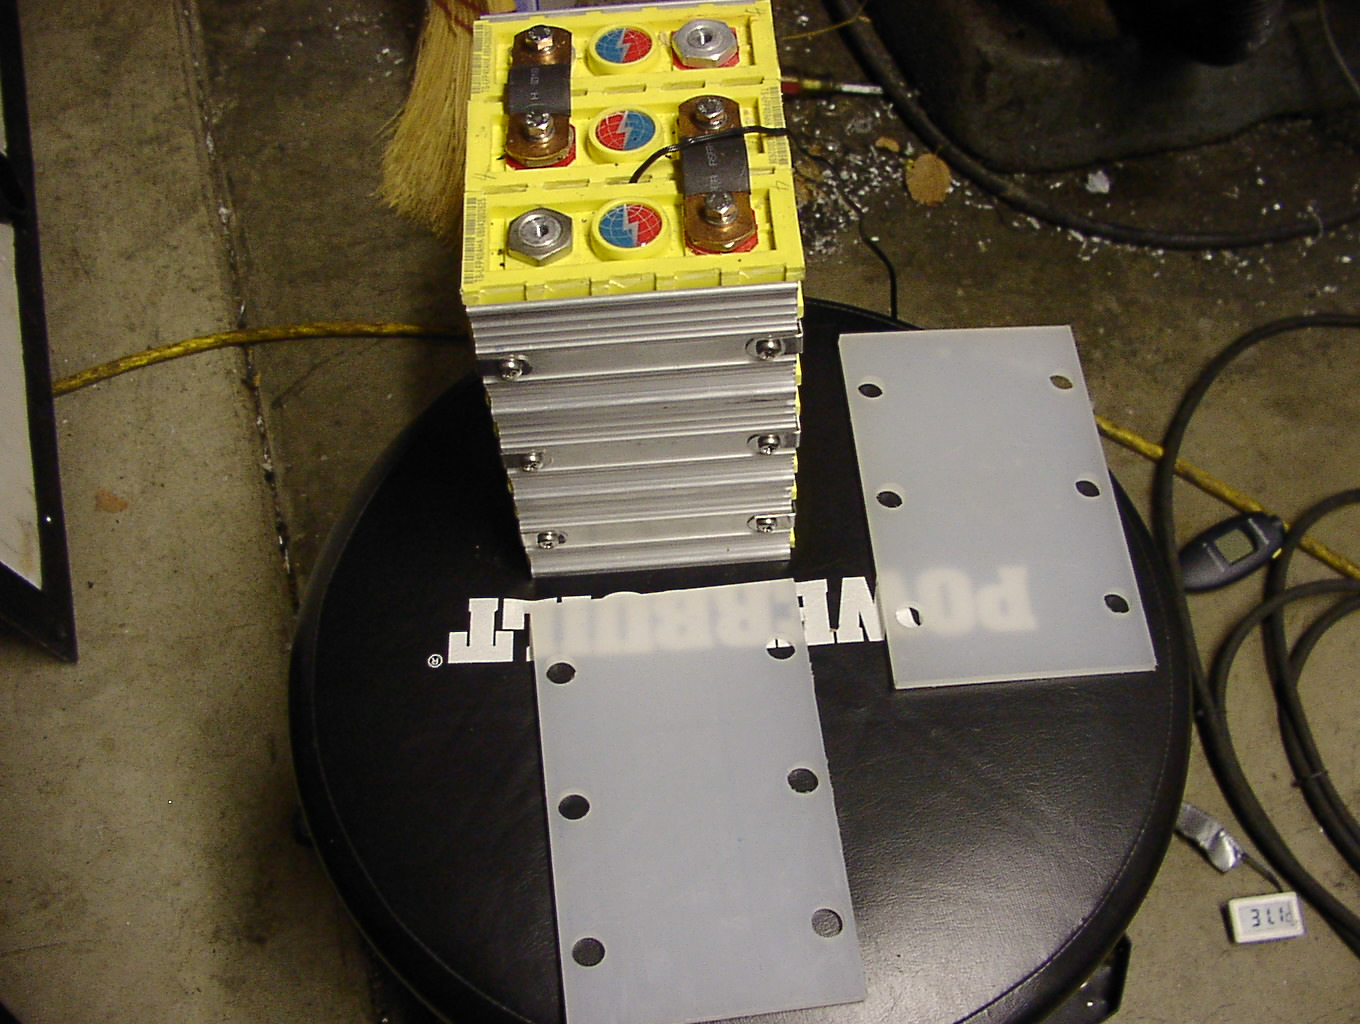 The plastic panels are machined. Now it's time to see how few nicads can be removed to fit the 3 Thundersky cells in.